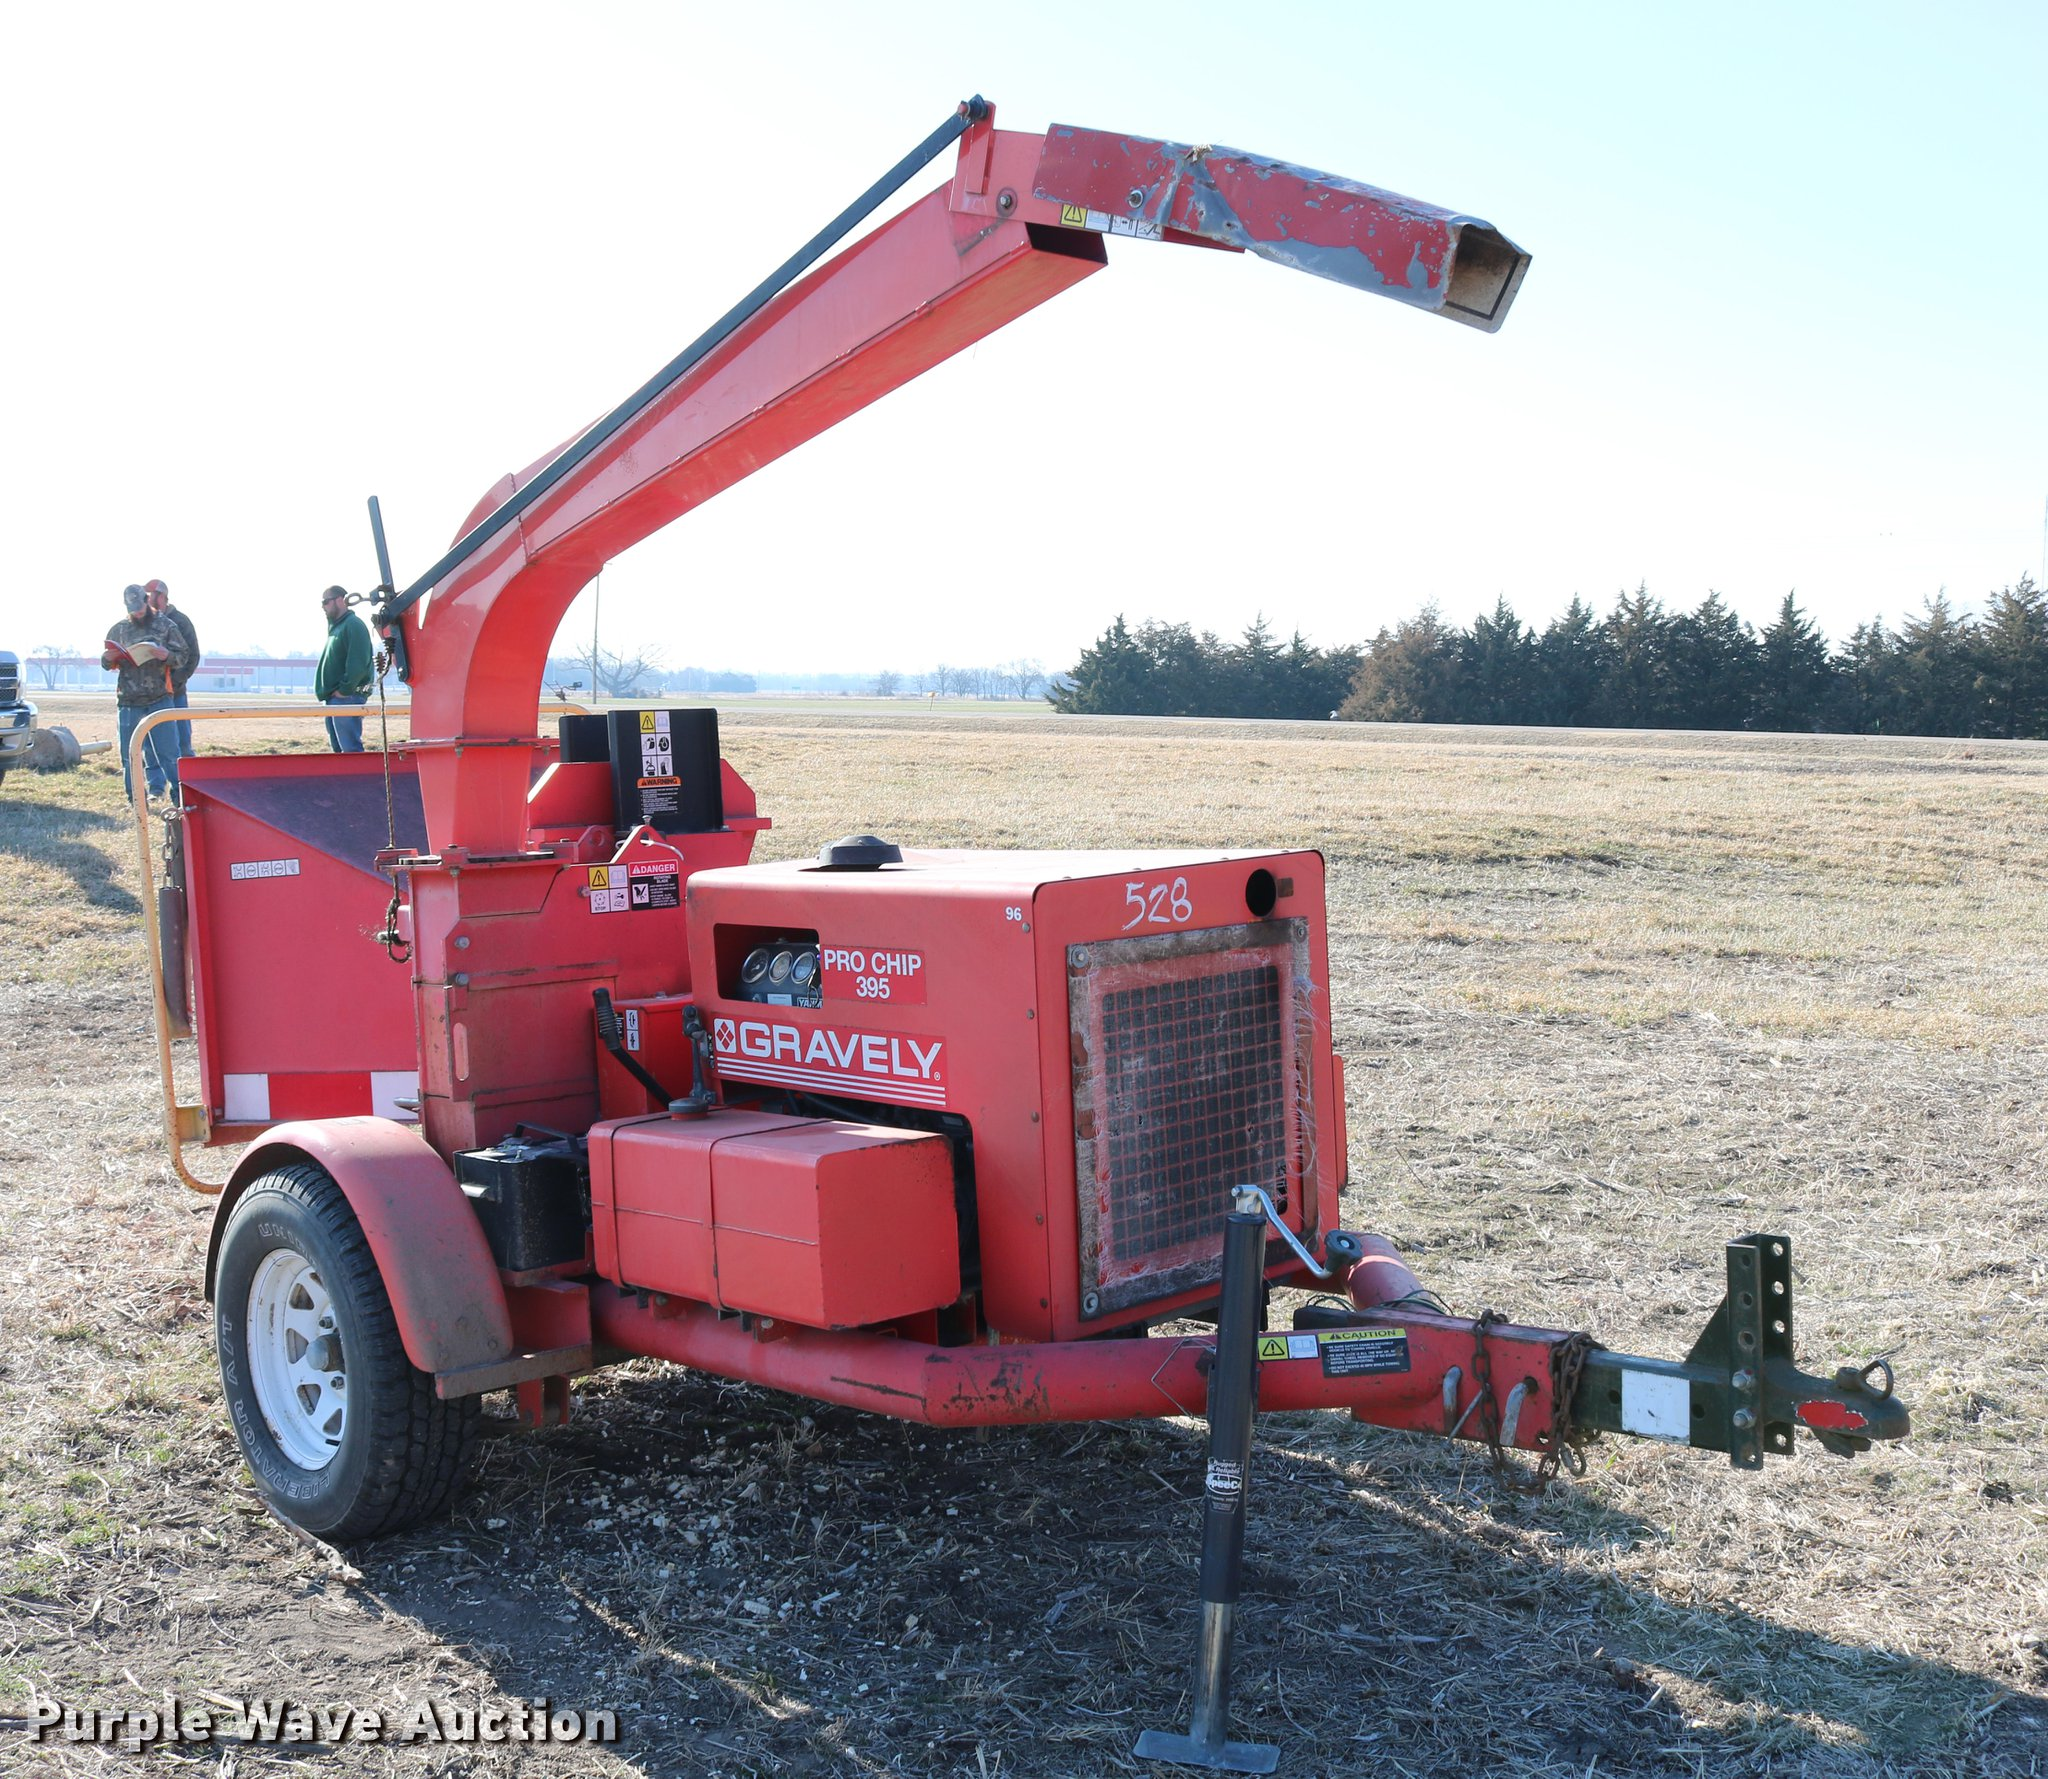 ... 1997 Gravely Pro Chip 395 wood chipper Full size in new window ...